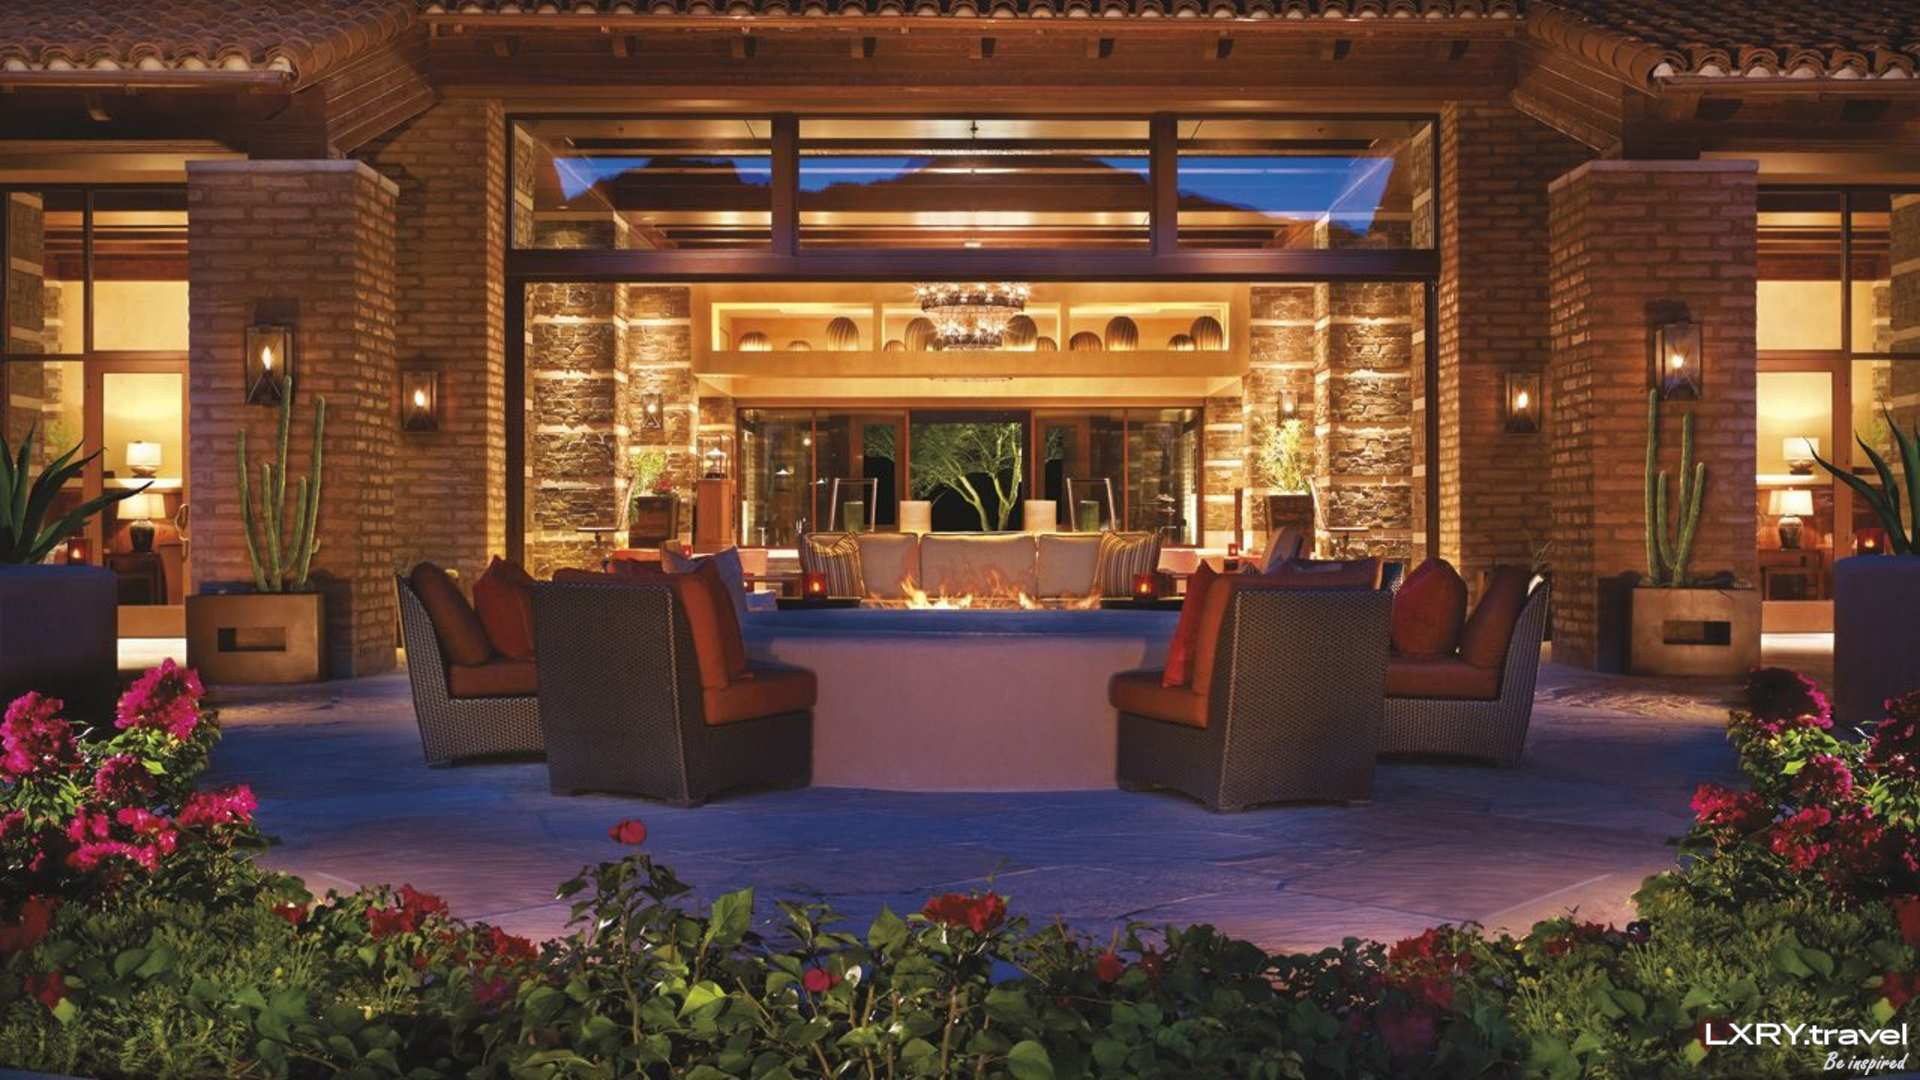 The Ritz-Carlton, Dove Mountain 43/56